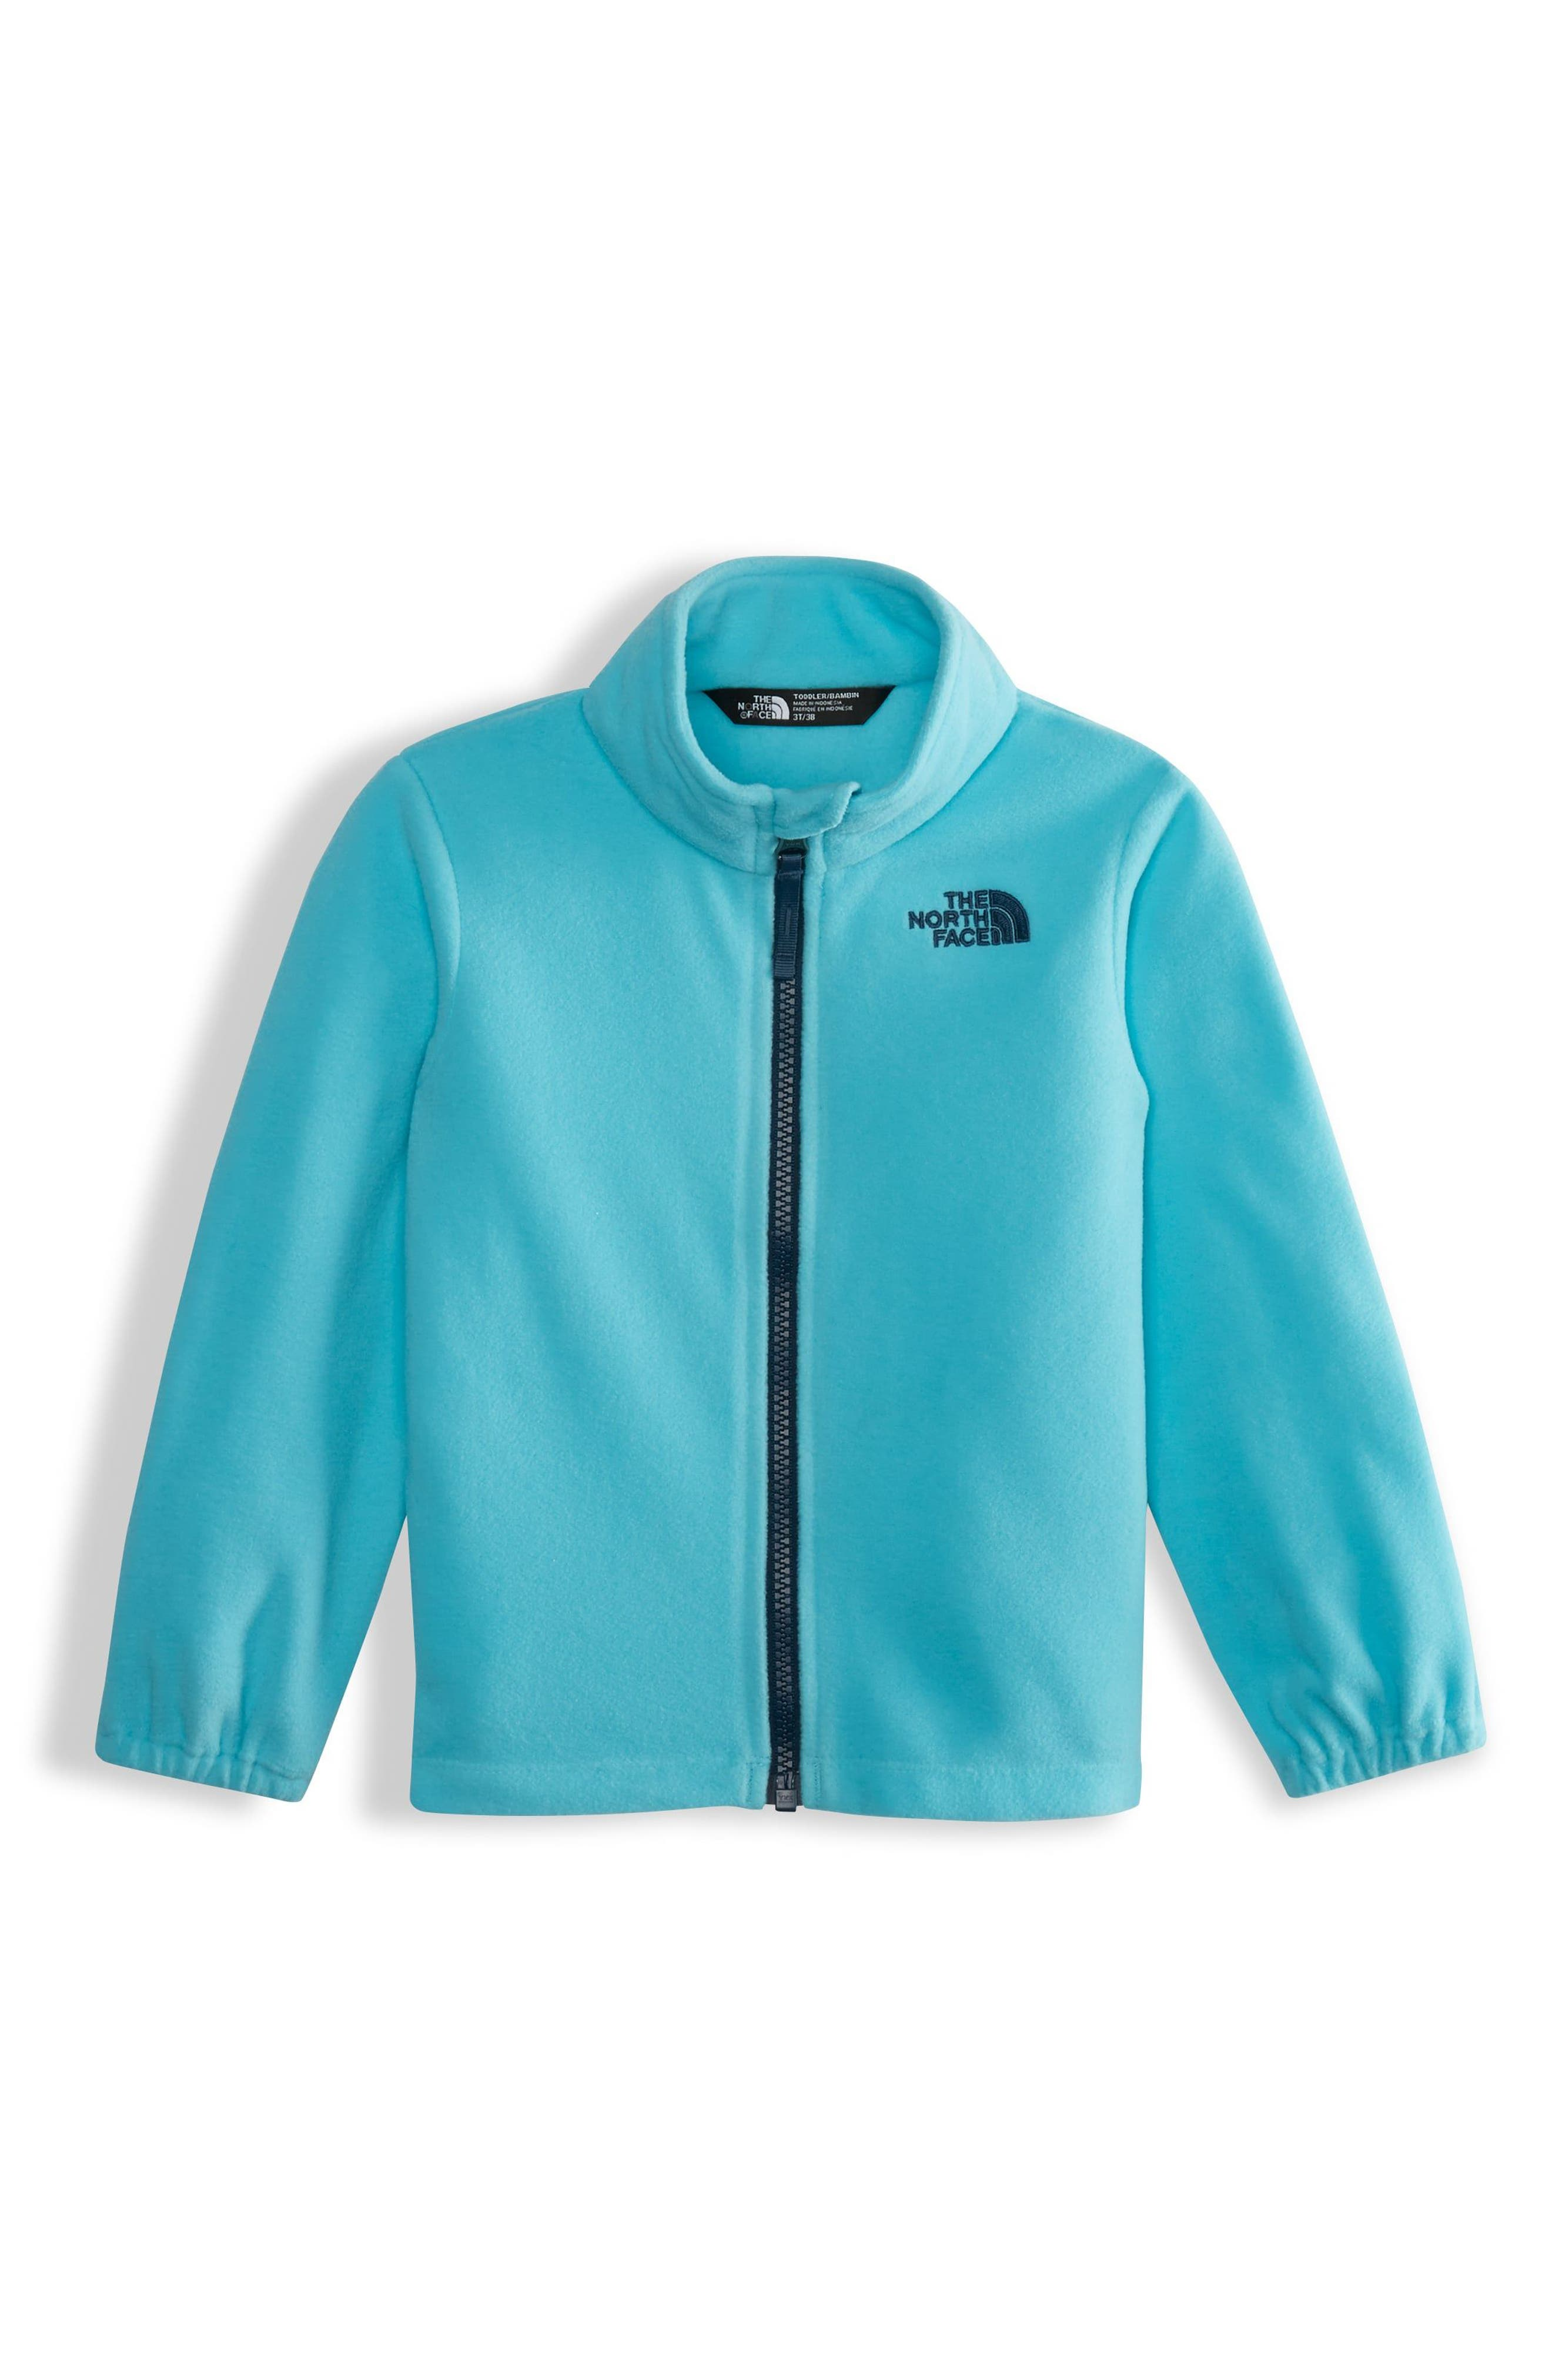 Stormy Rain Triclimate<sup>®</sup> Waterproof 3-in-1 Jacket,                             Alternate thumbnail 2, color,                             441